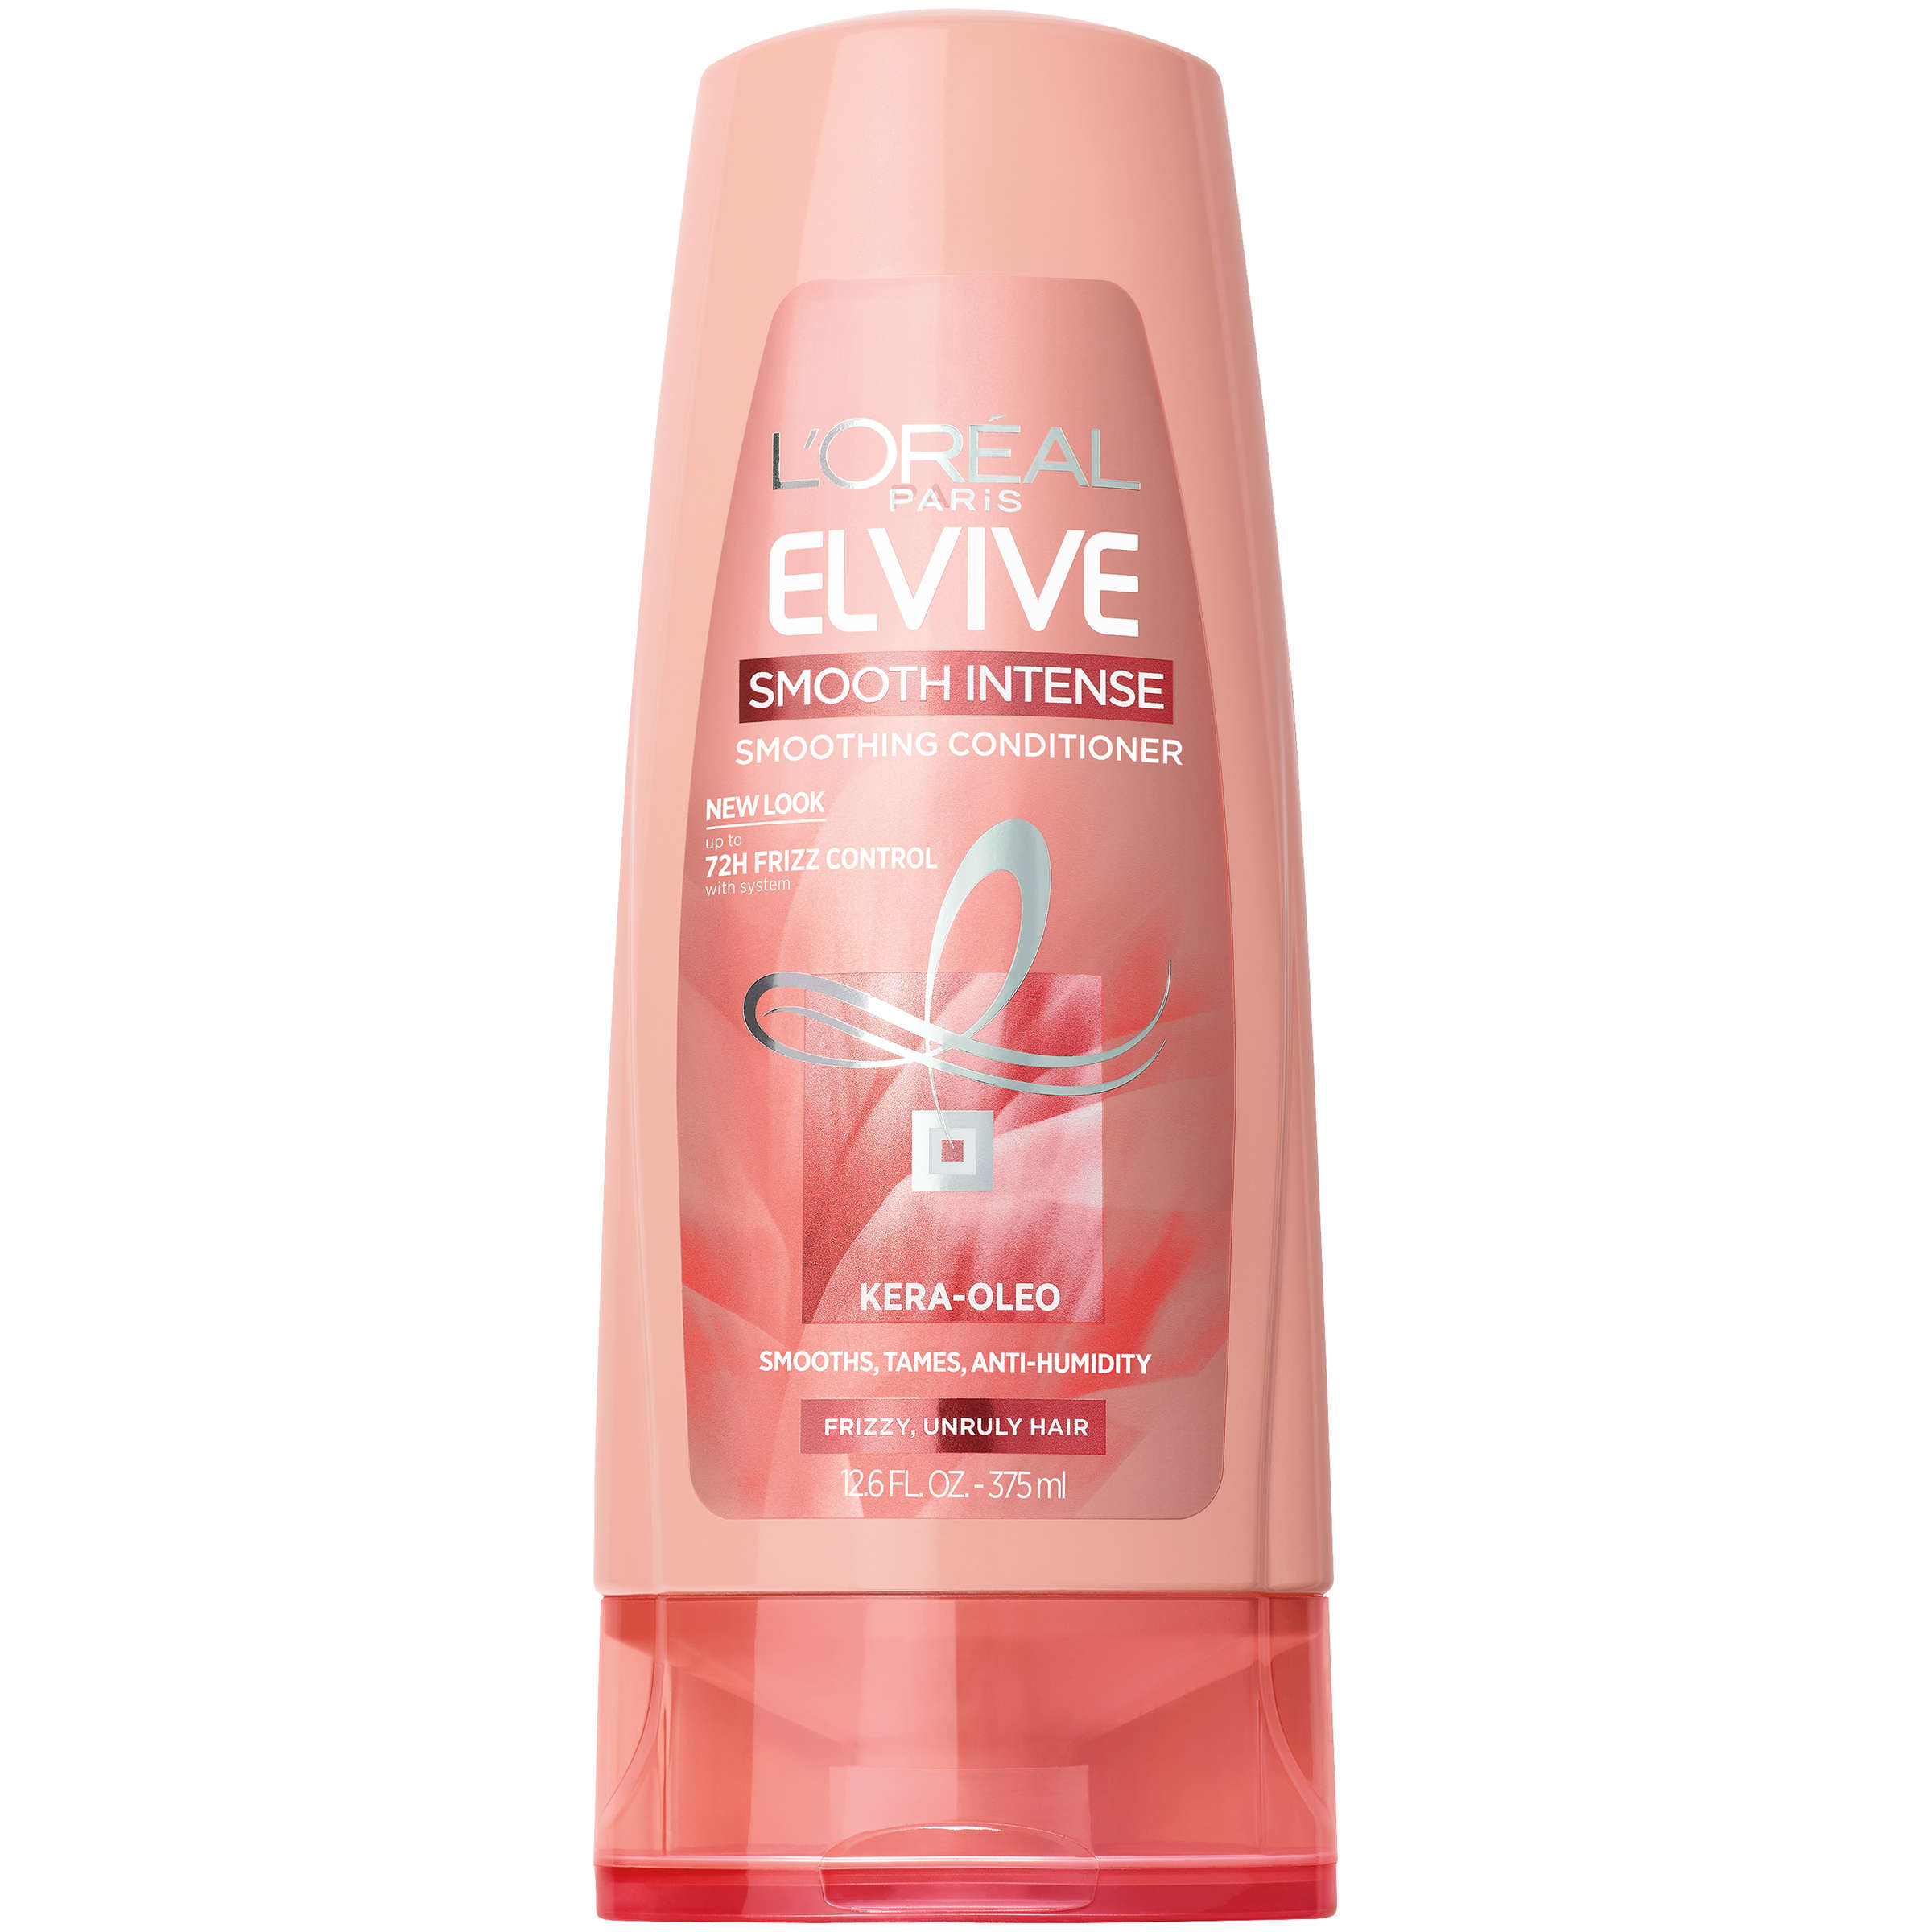 L'Oreal Paris Elvive Smooth Intense Smoothing Conditioner 12.6 FL OZ